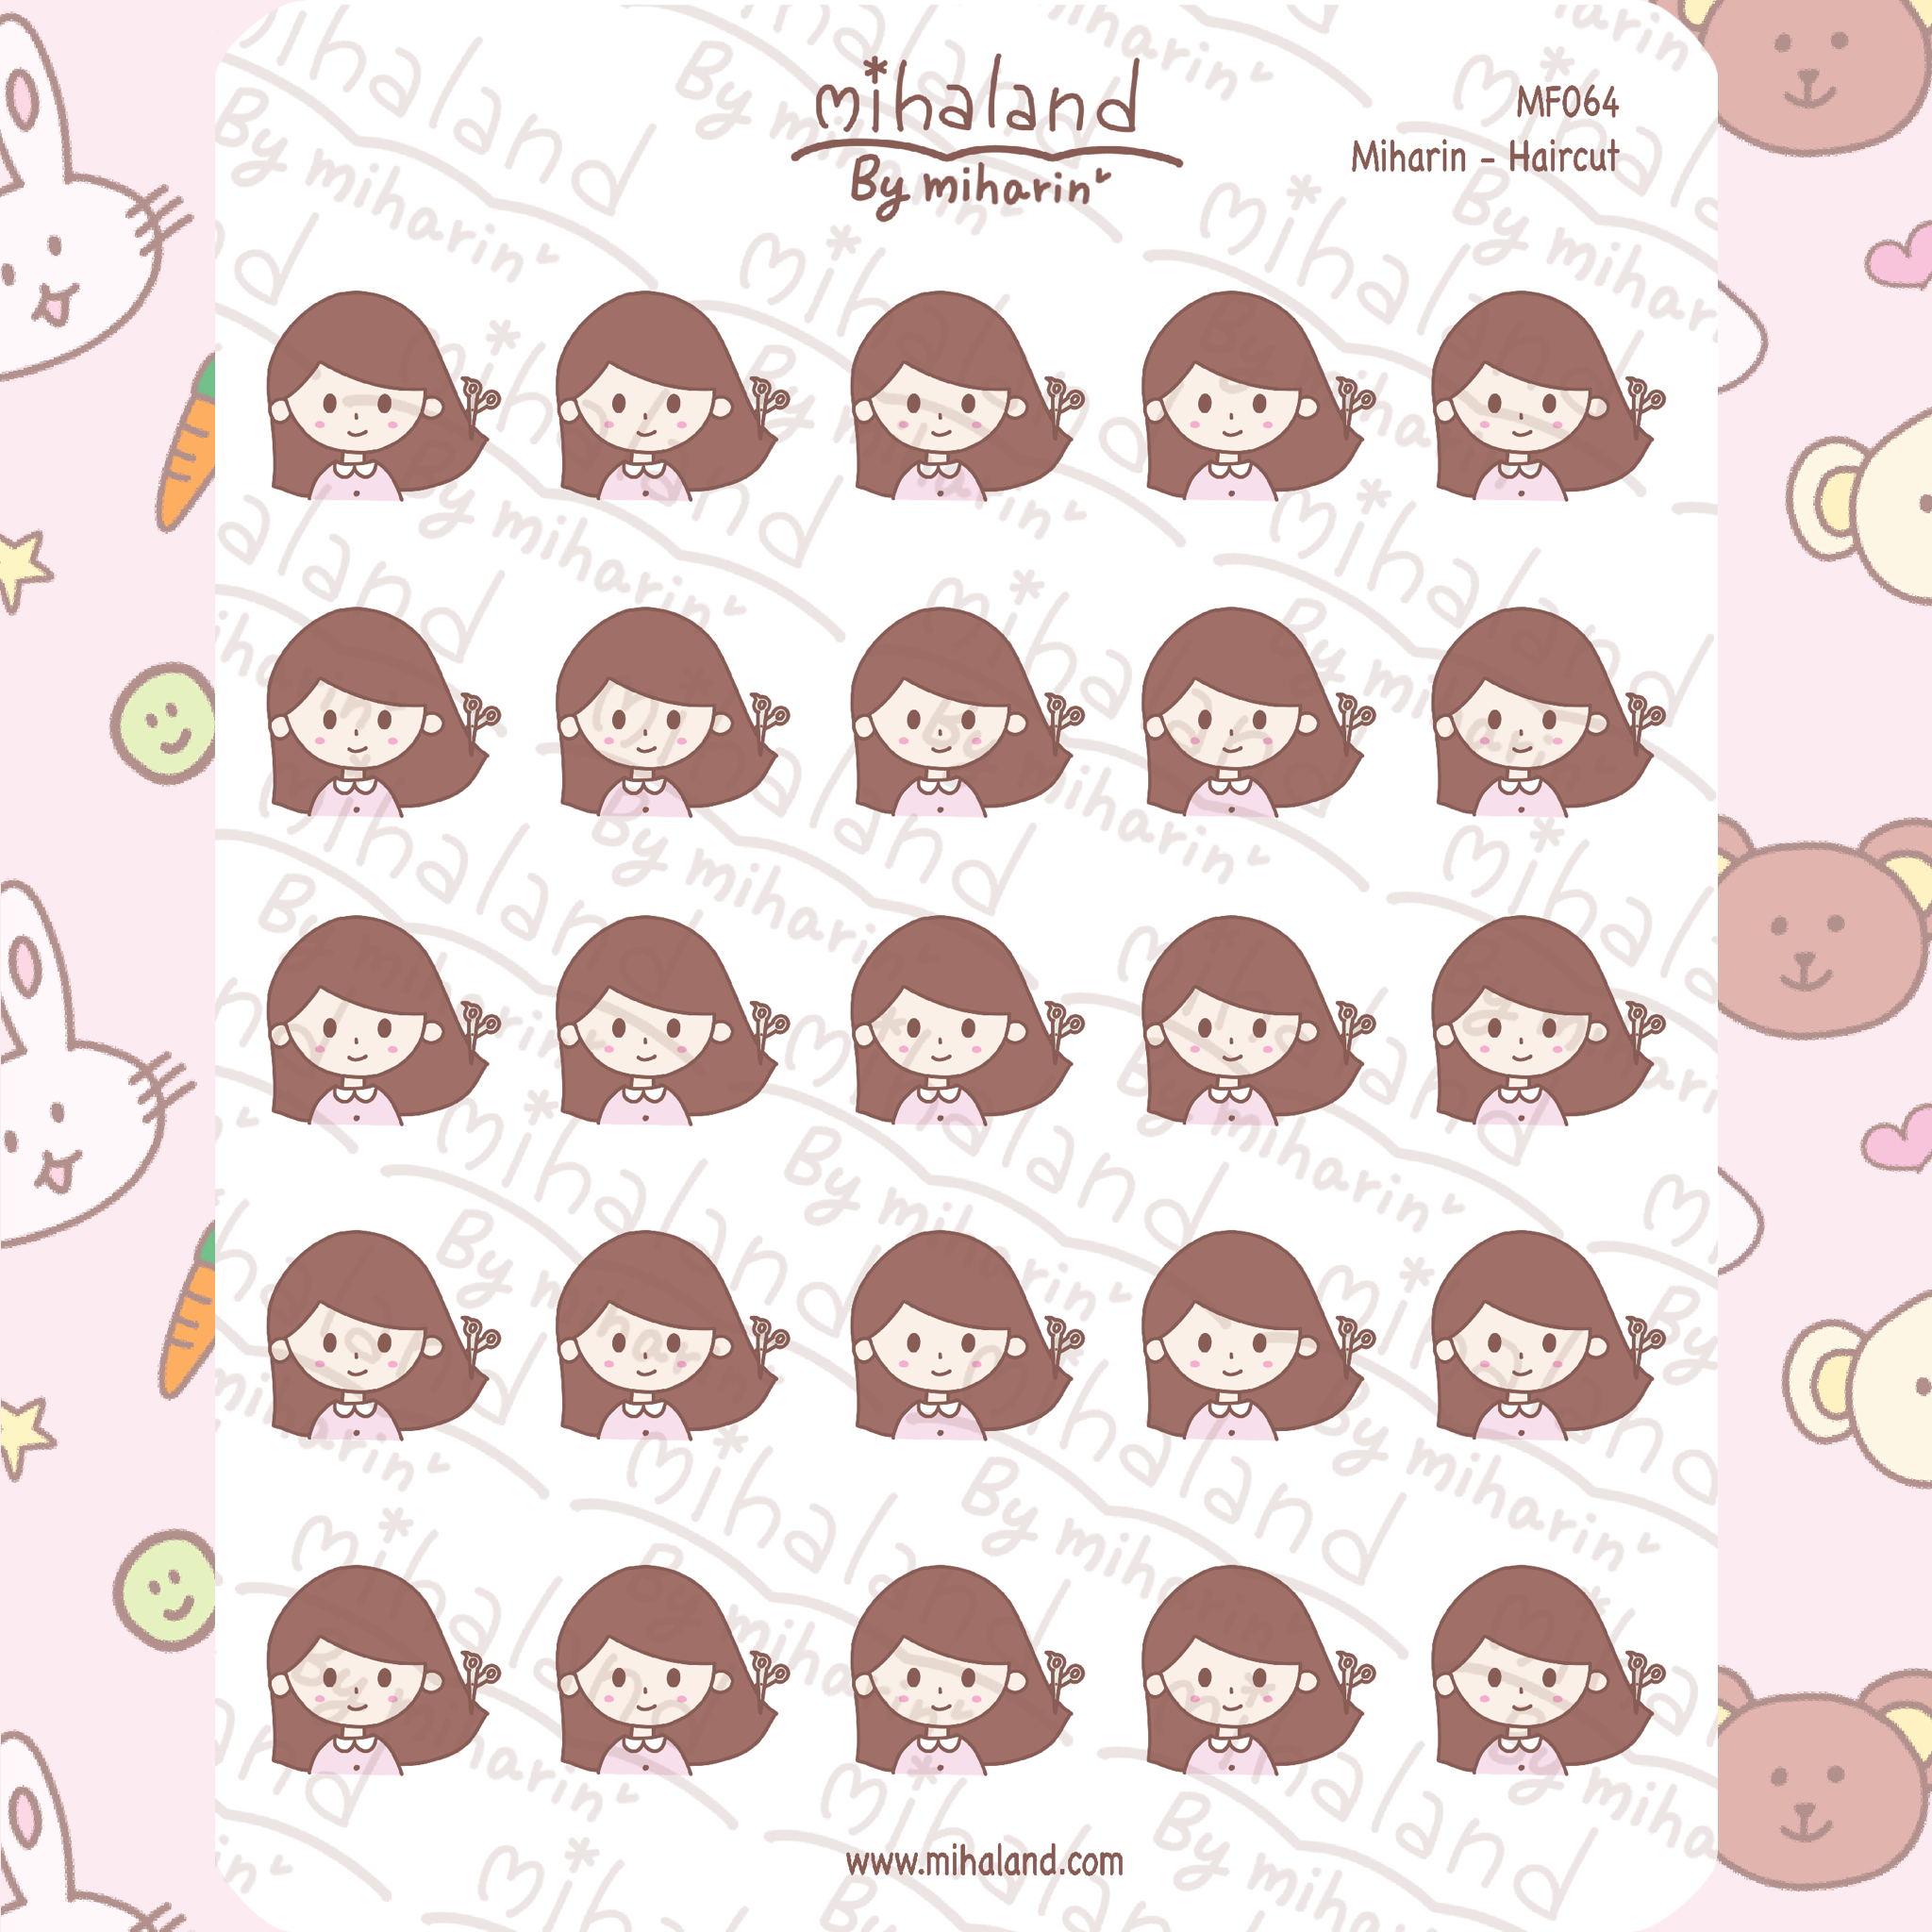 Miharin - Haircut Planner Stickers (MF064)